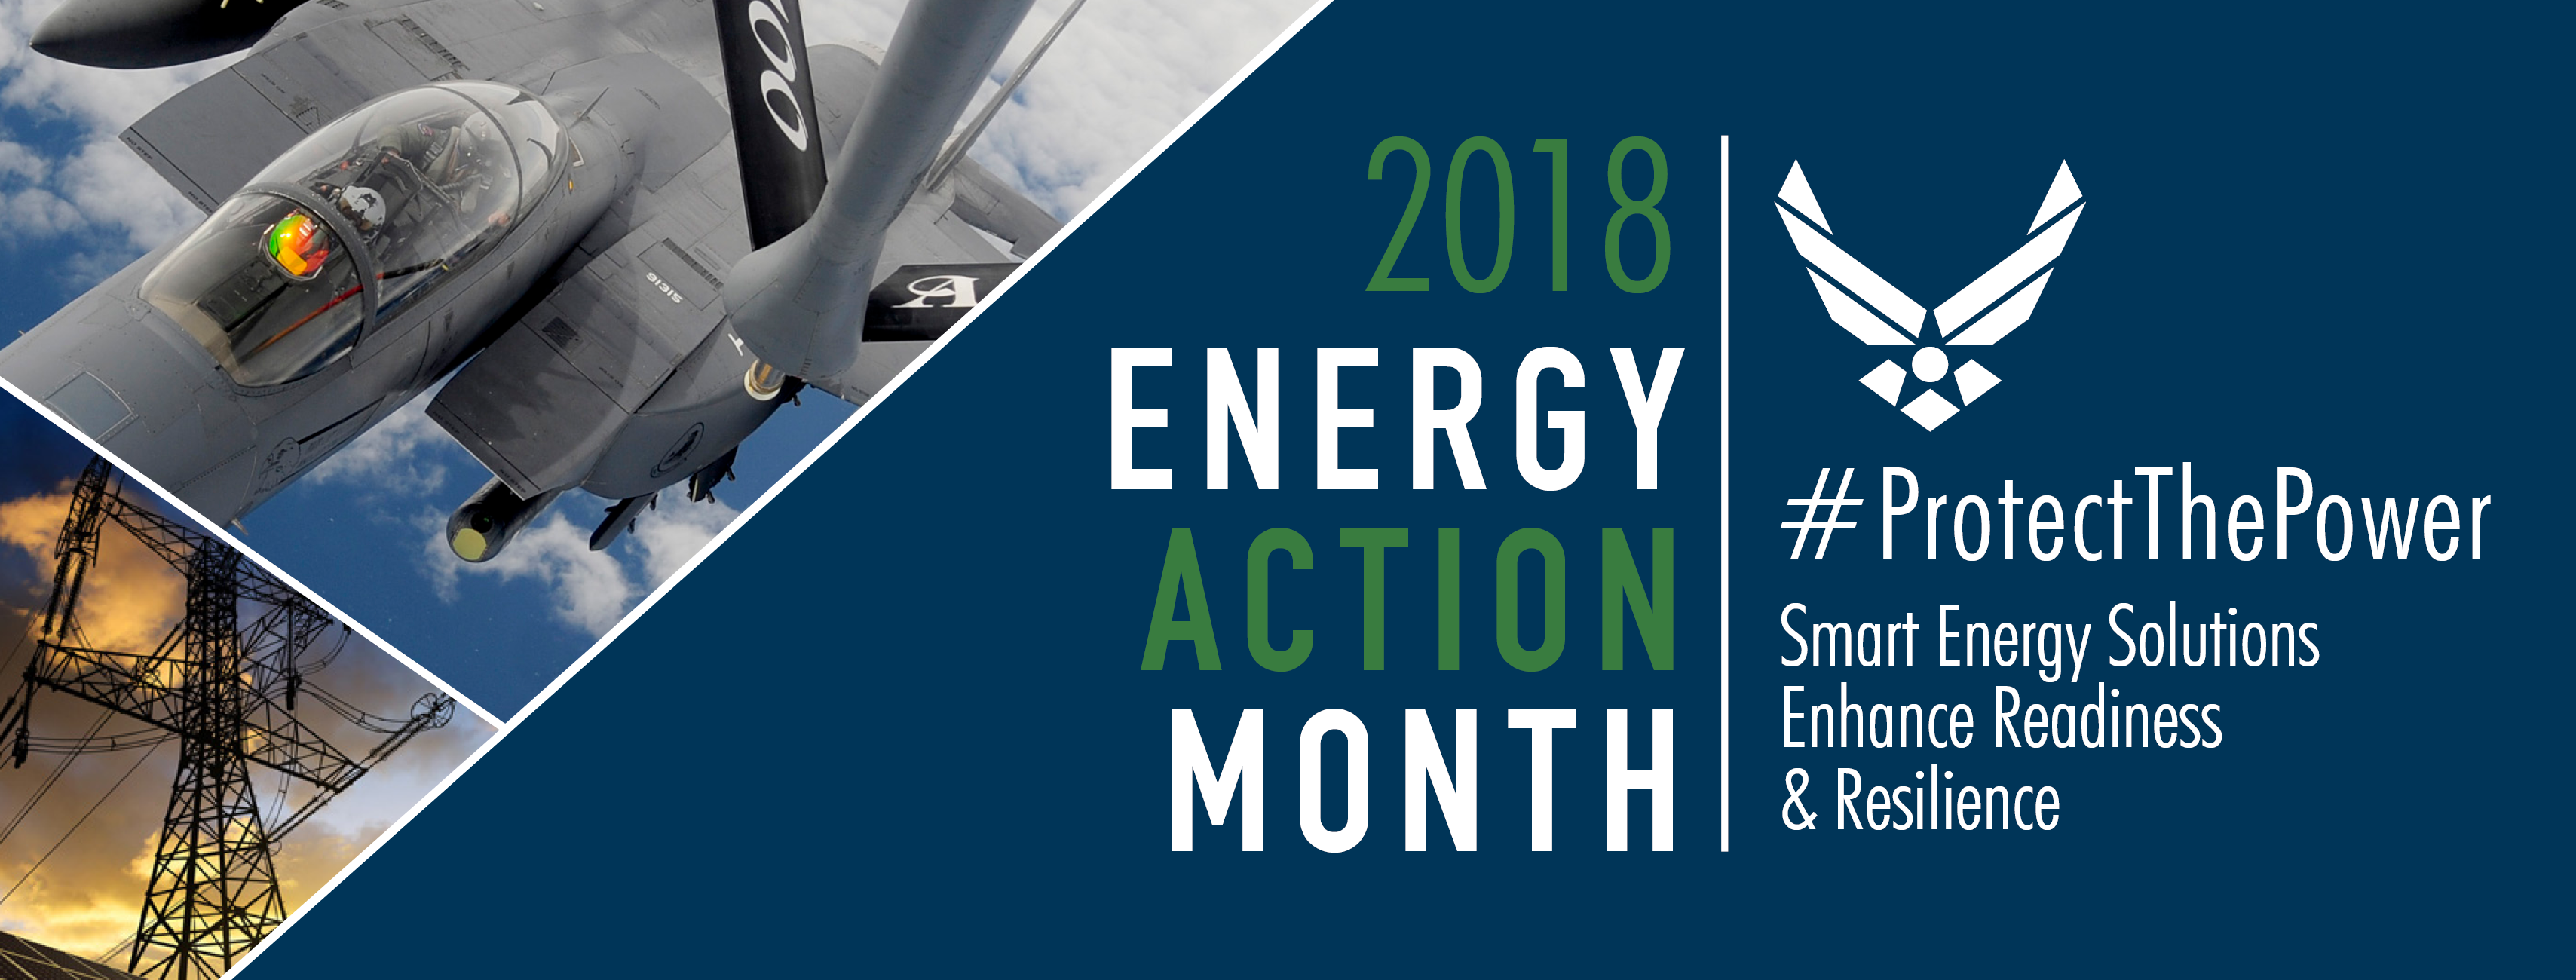 Energy Action Month